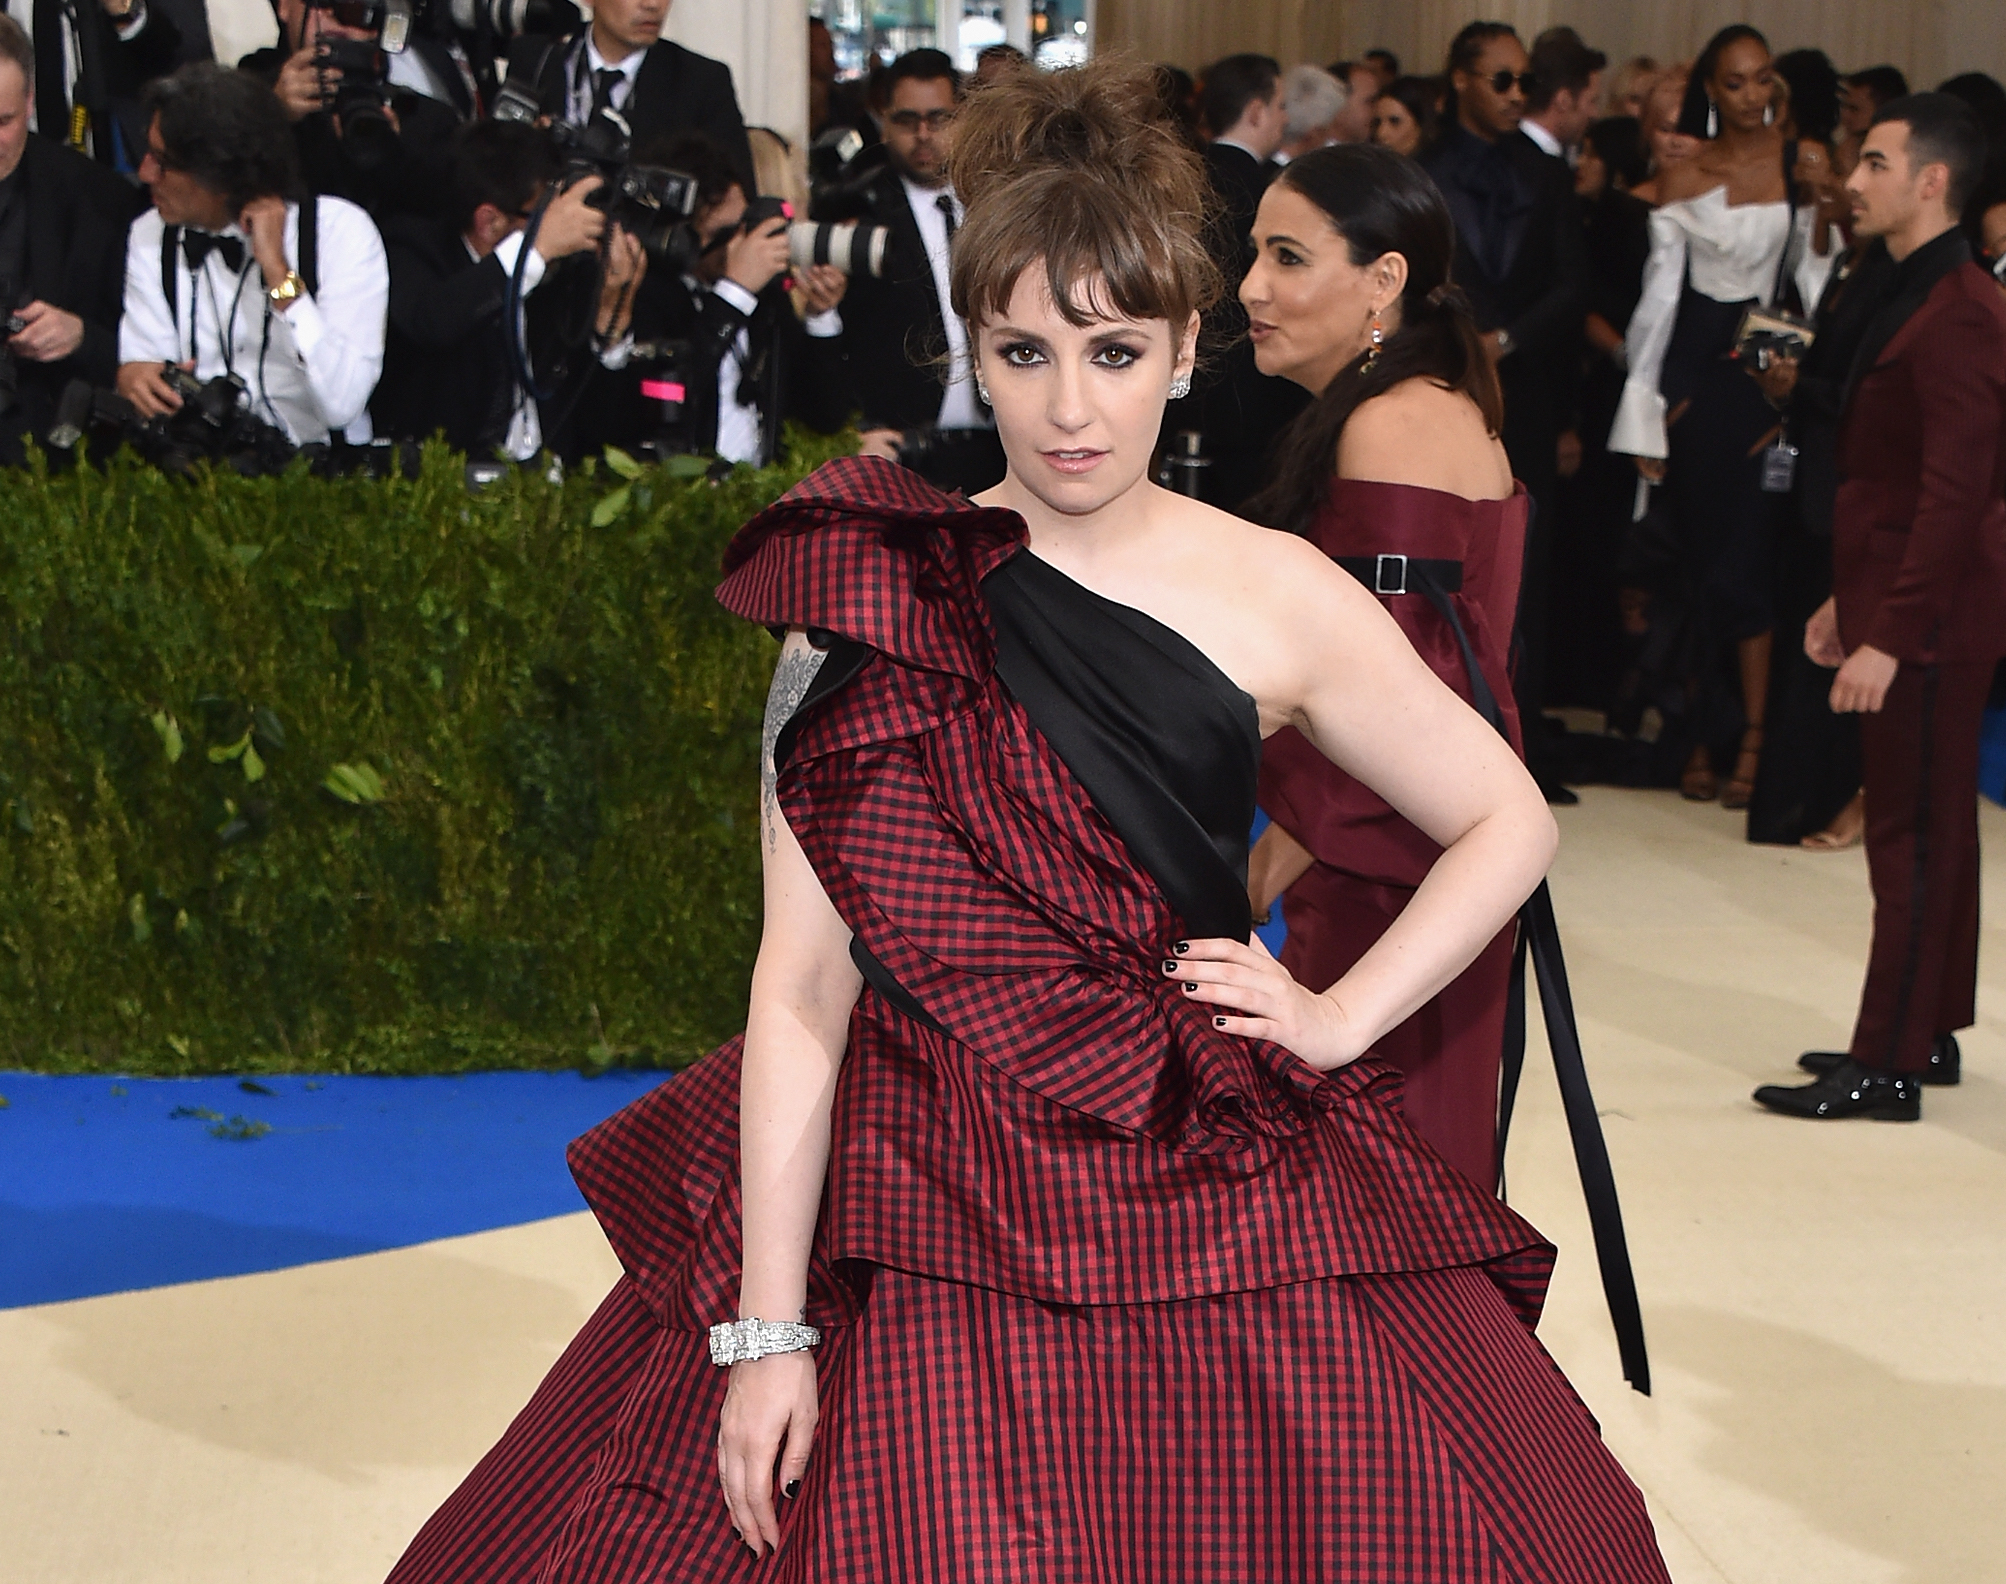 Lena Dunham explained why she was hospitalized after the Met Gala